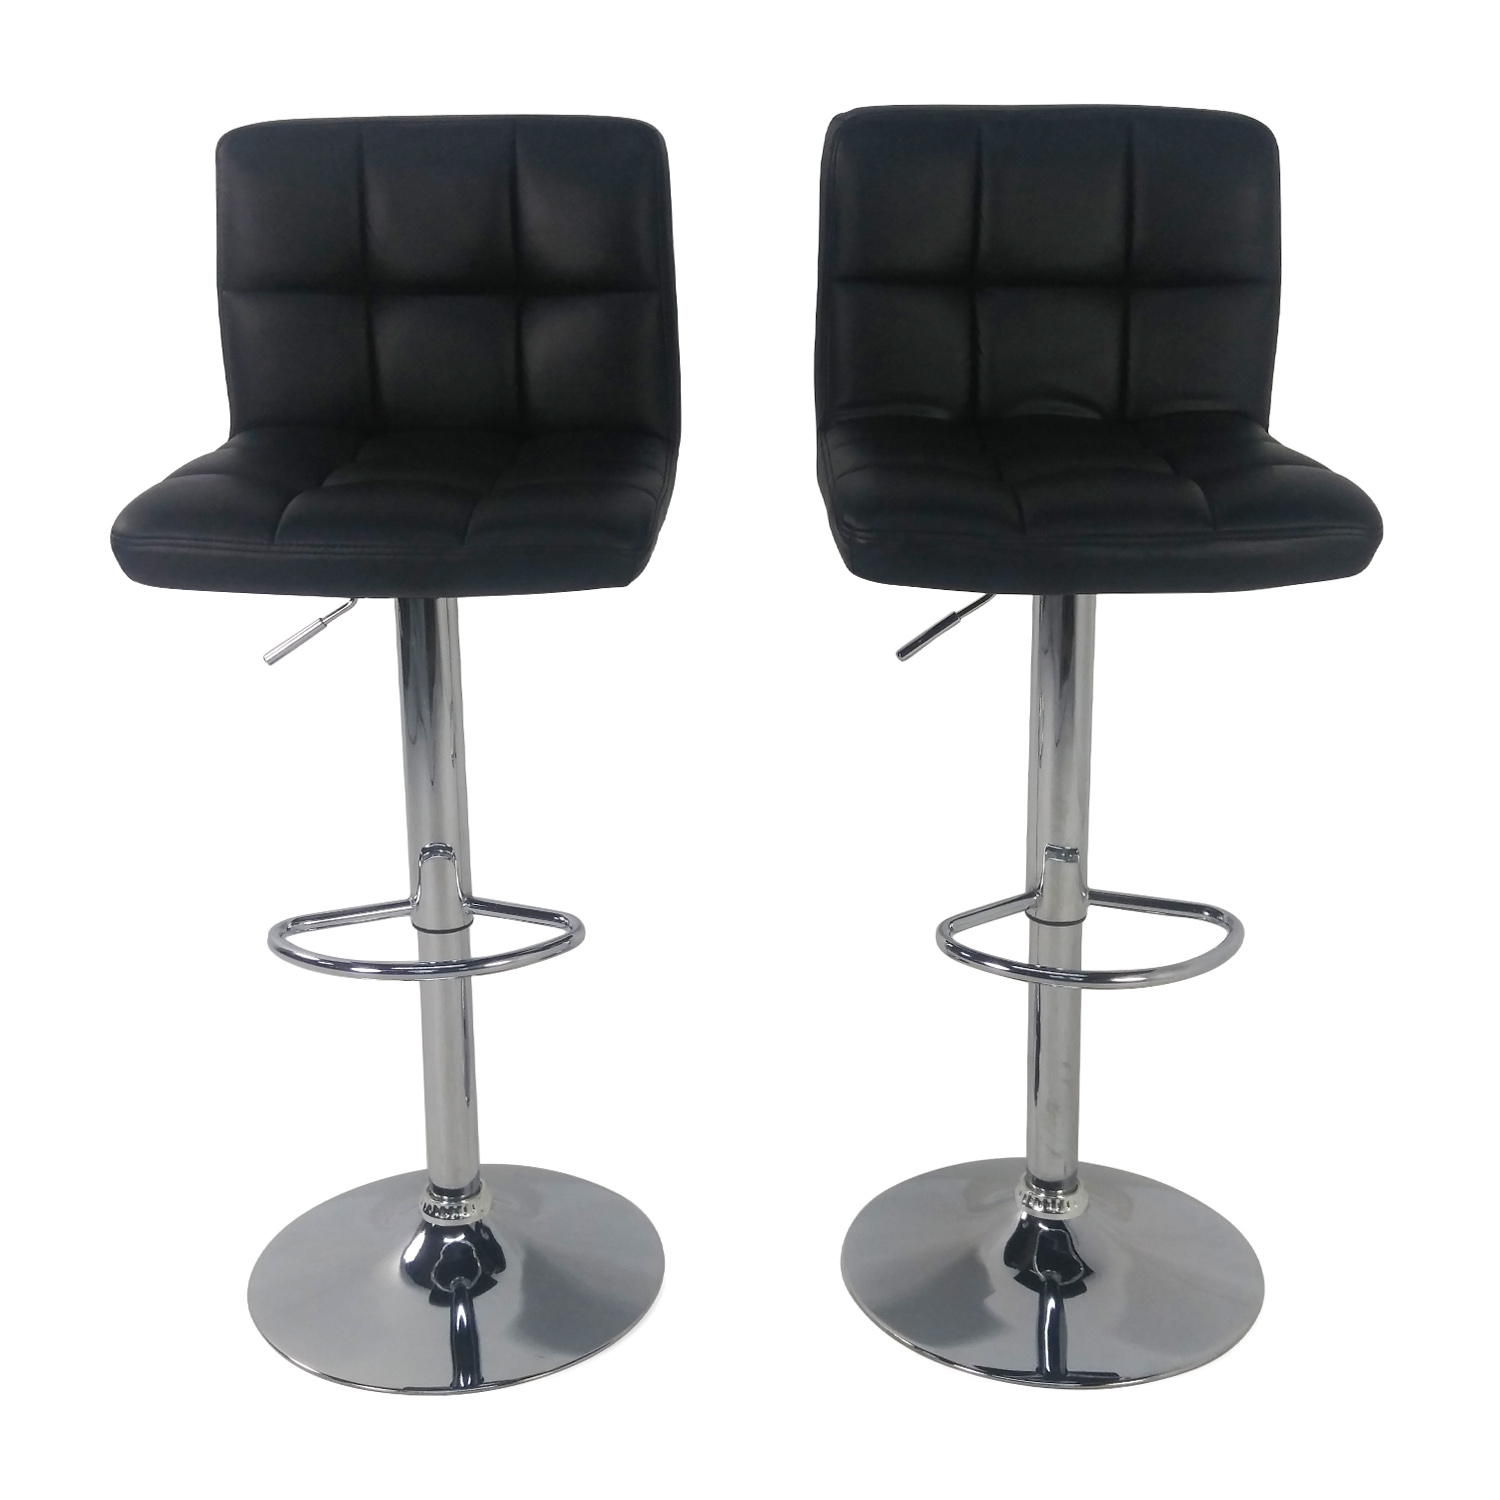 Roundhill Roundhill Black Adjustable Swivel Chairs Sofas